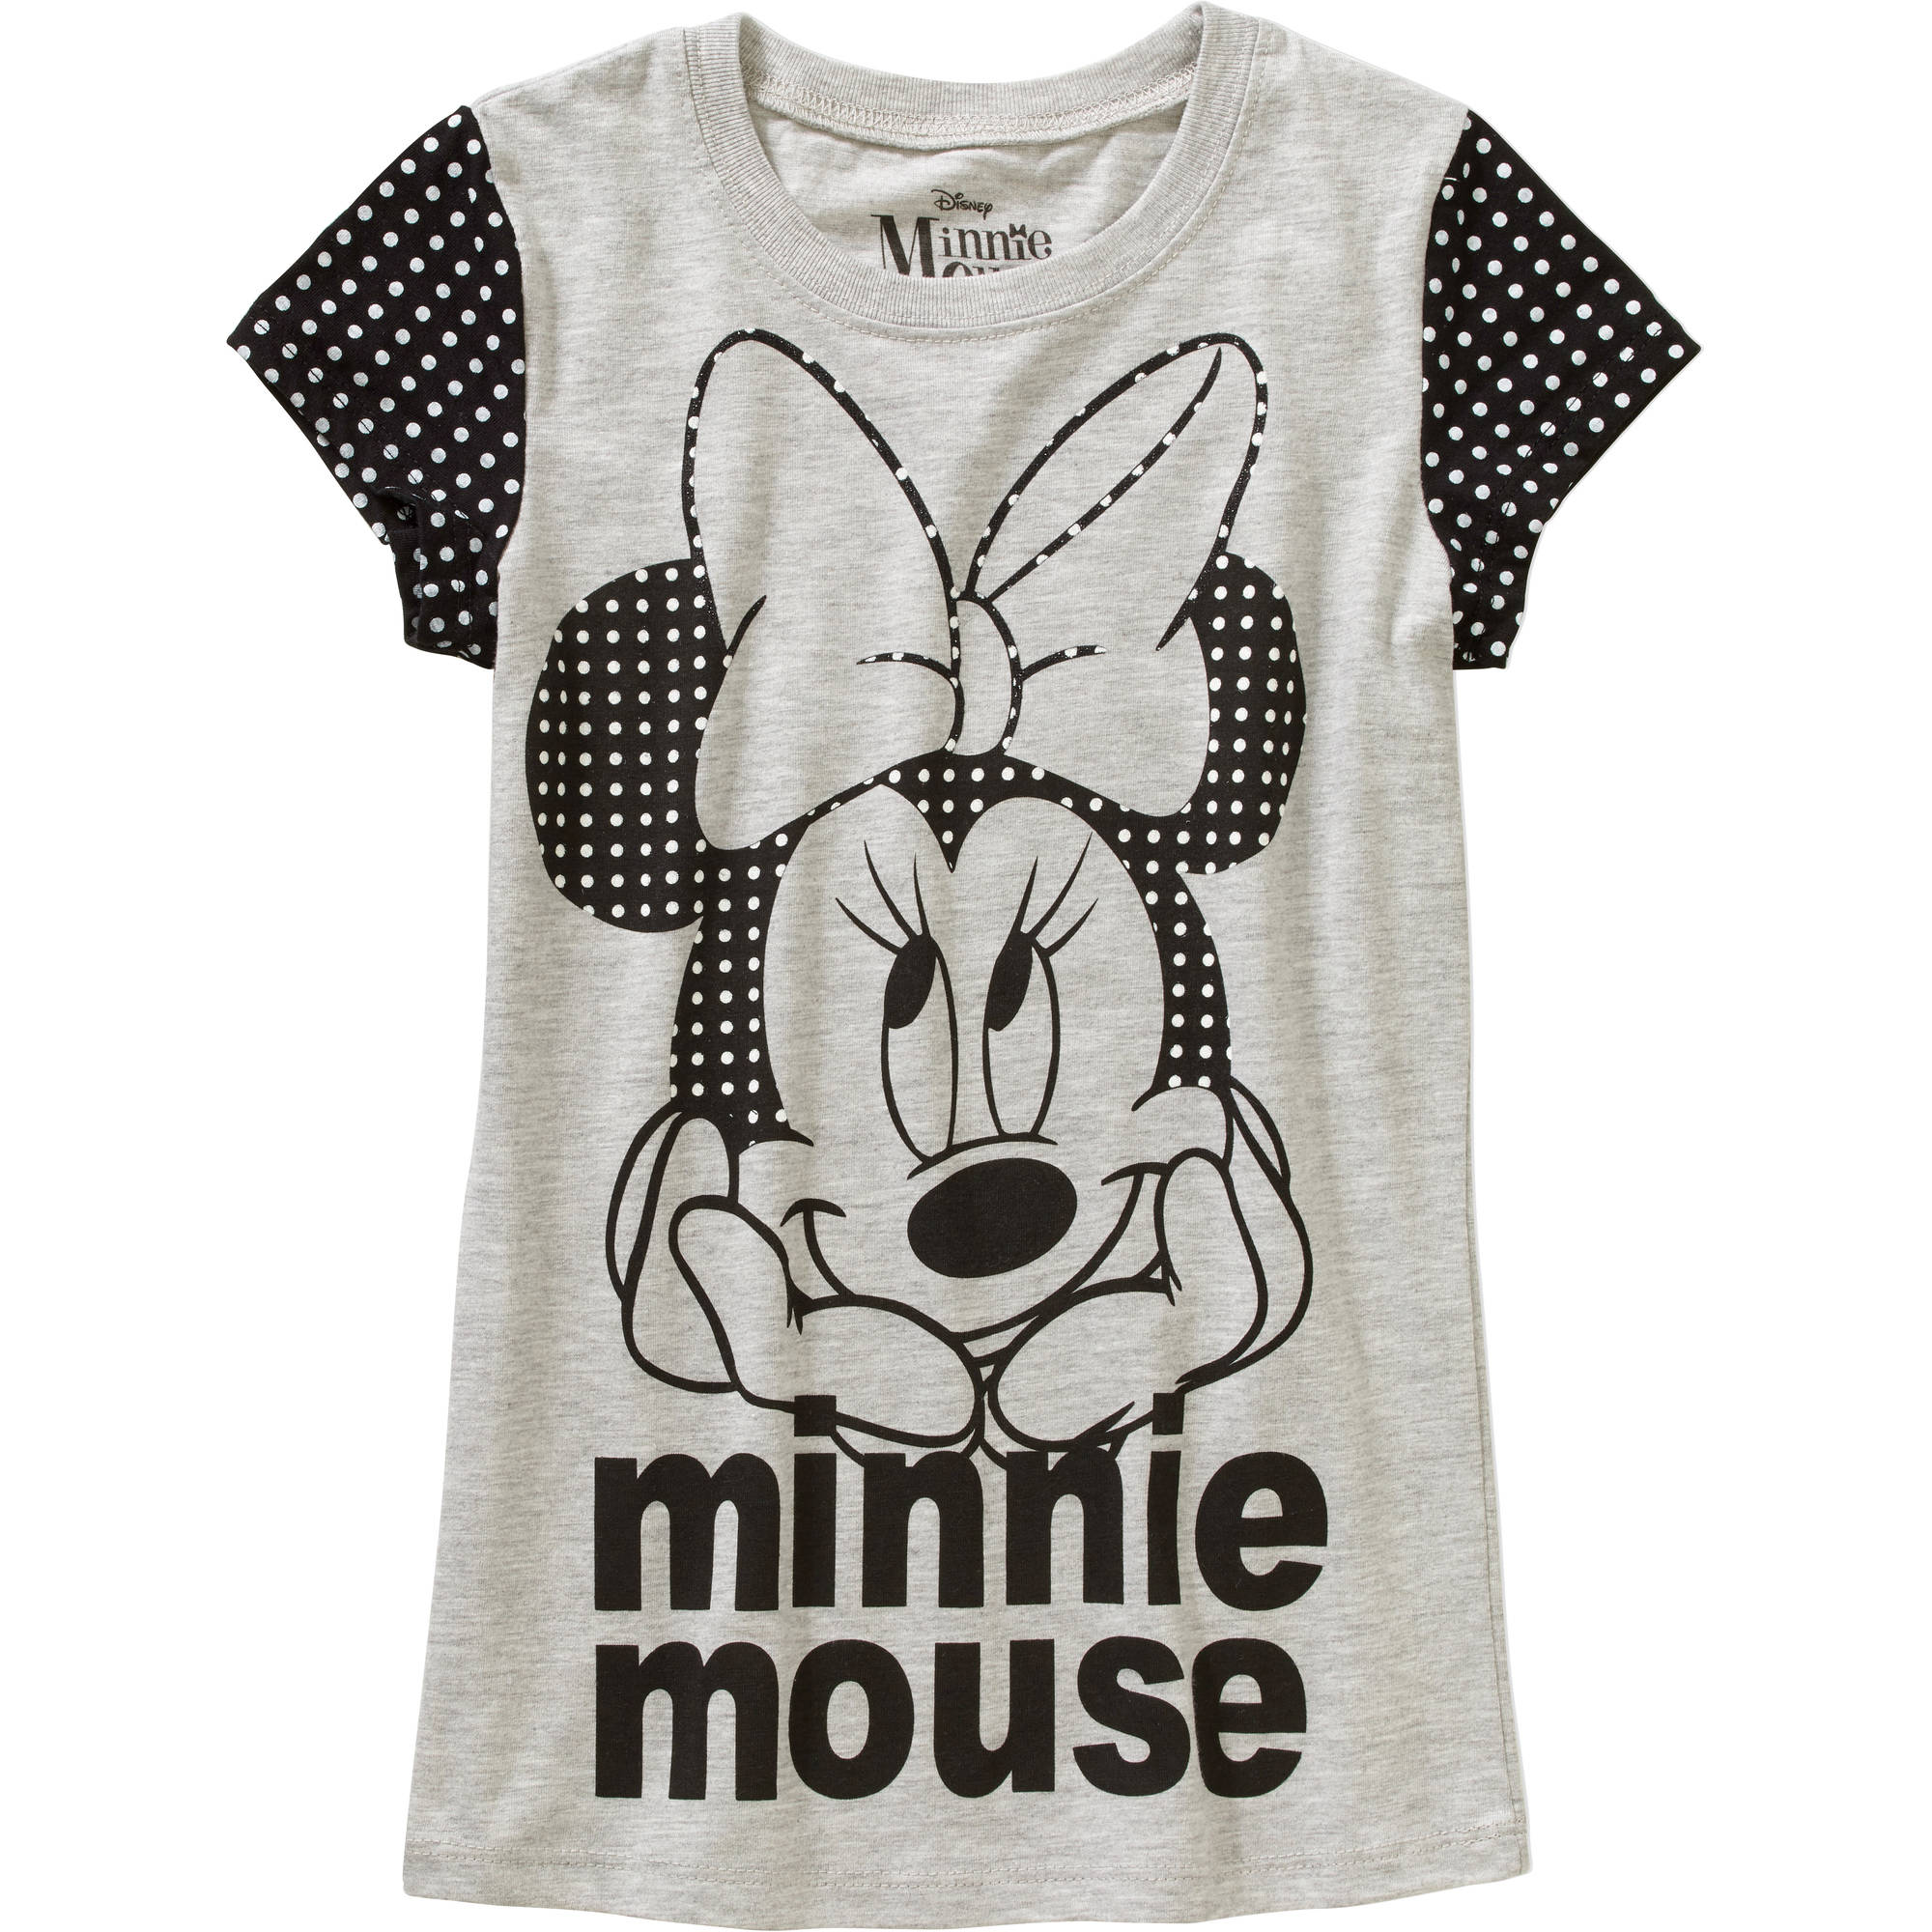 Minnie Mouse Girls' Polka Dots Minnie Short Sleeve Crew Neck Graphic T-Shirt